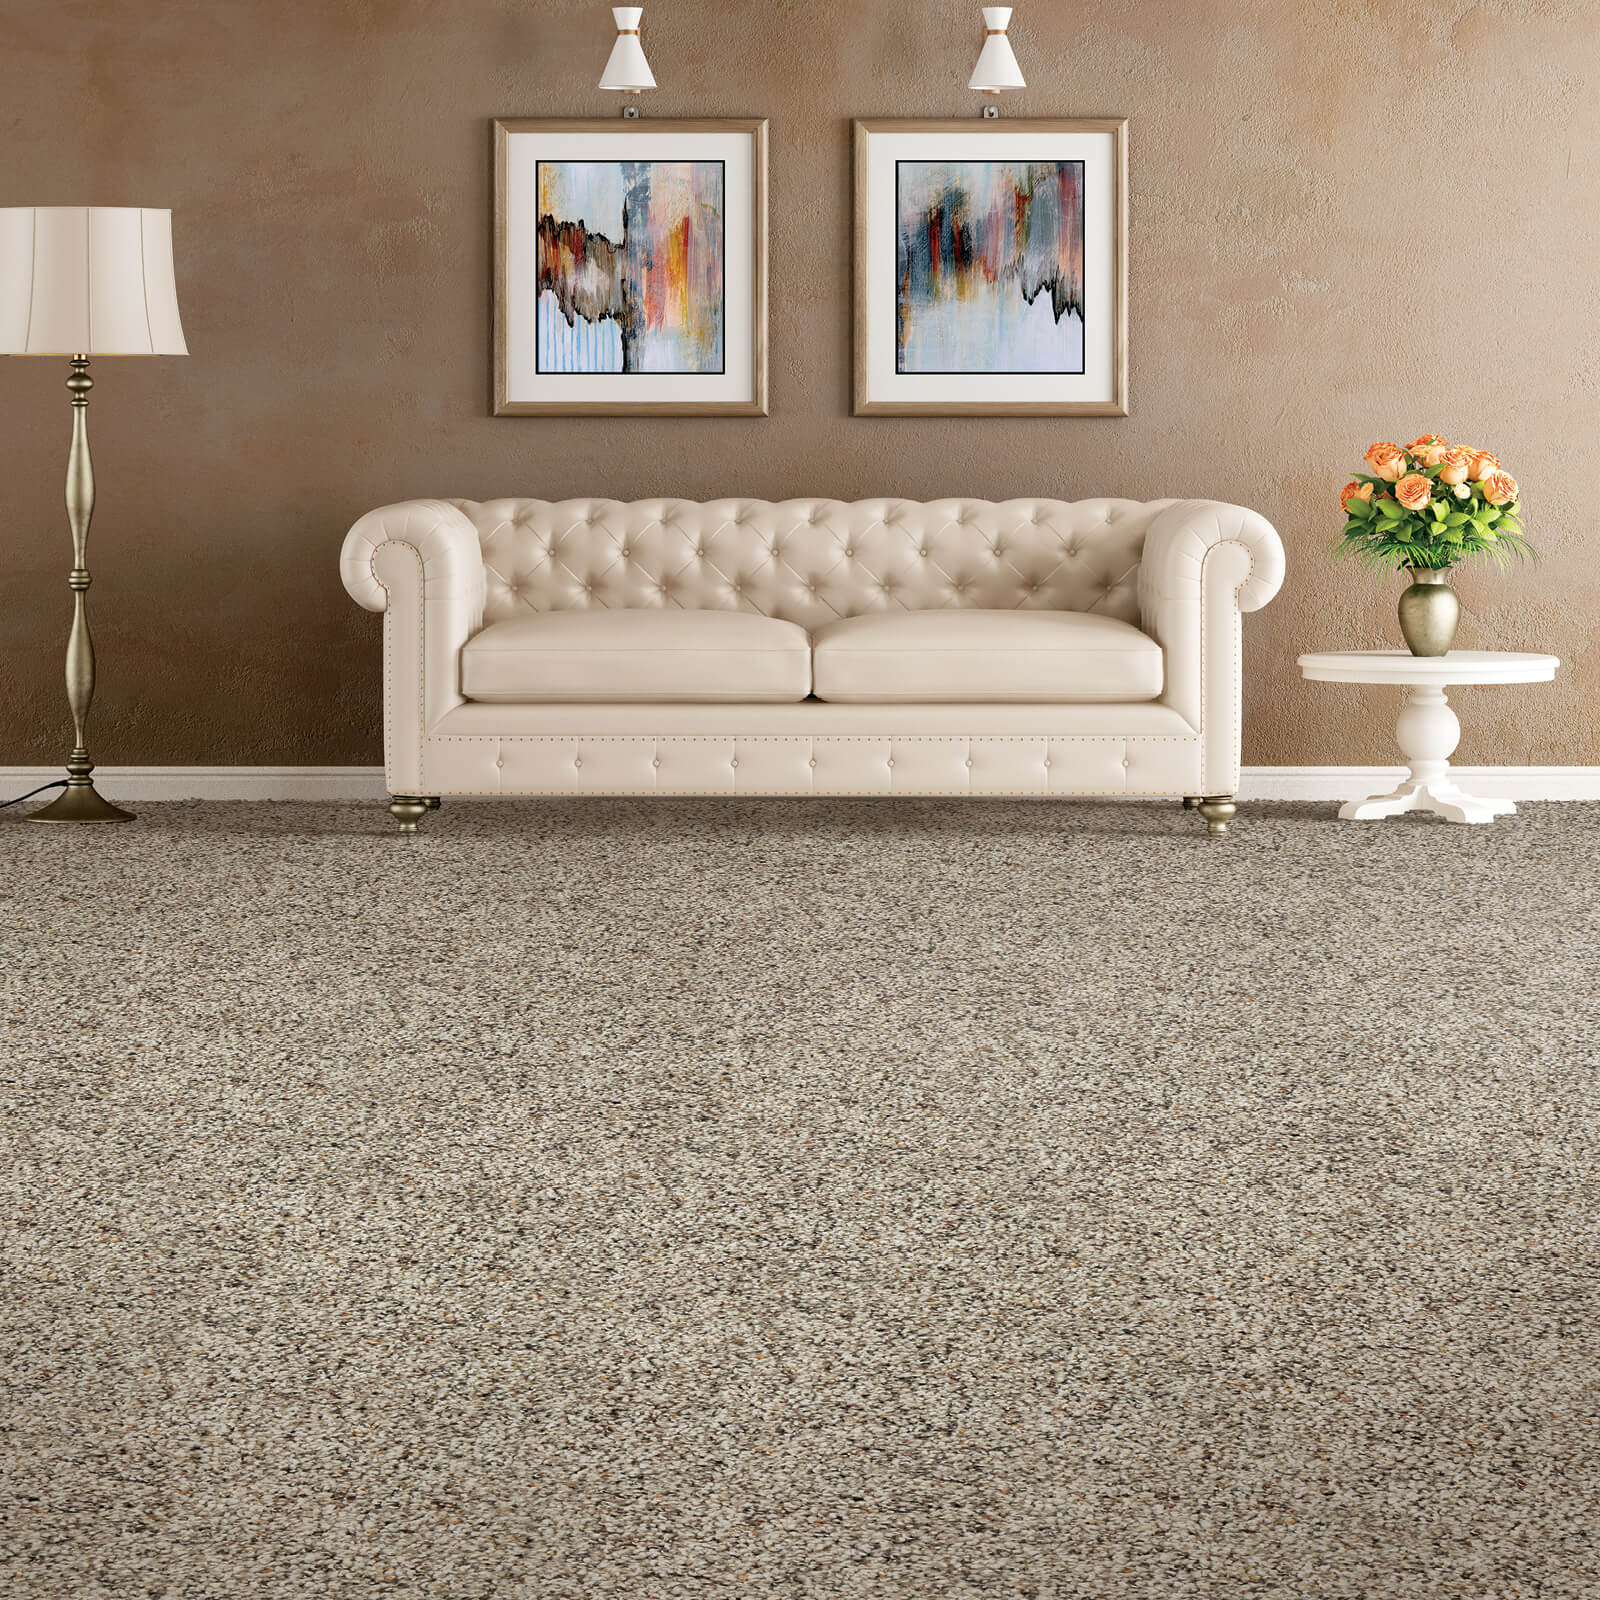 Carpet flooring | Georgia Flooring